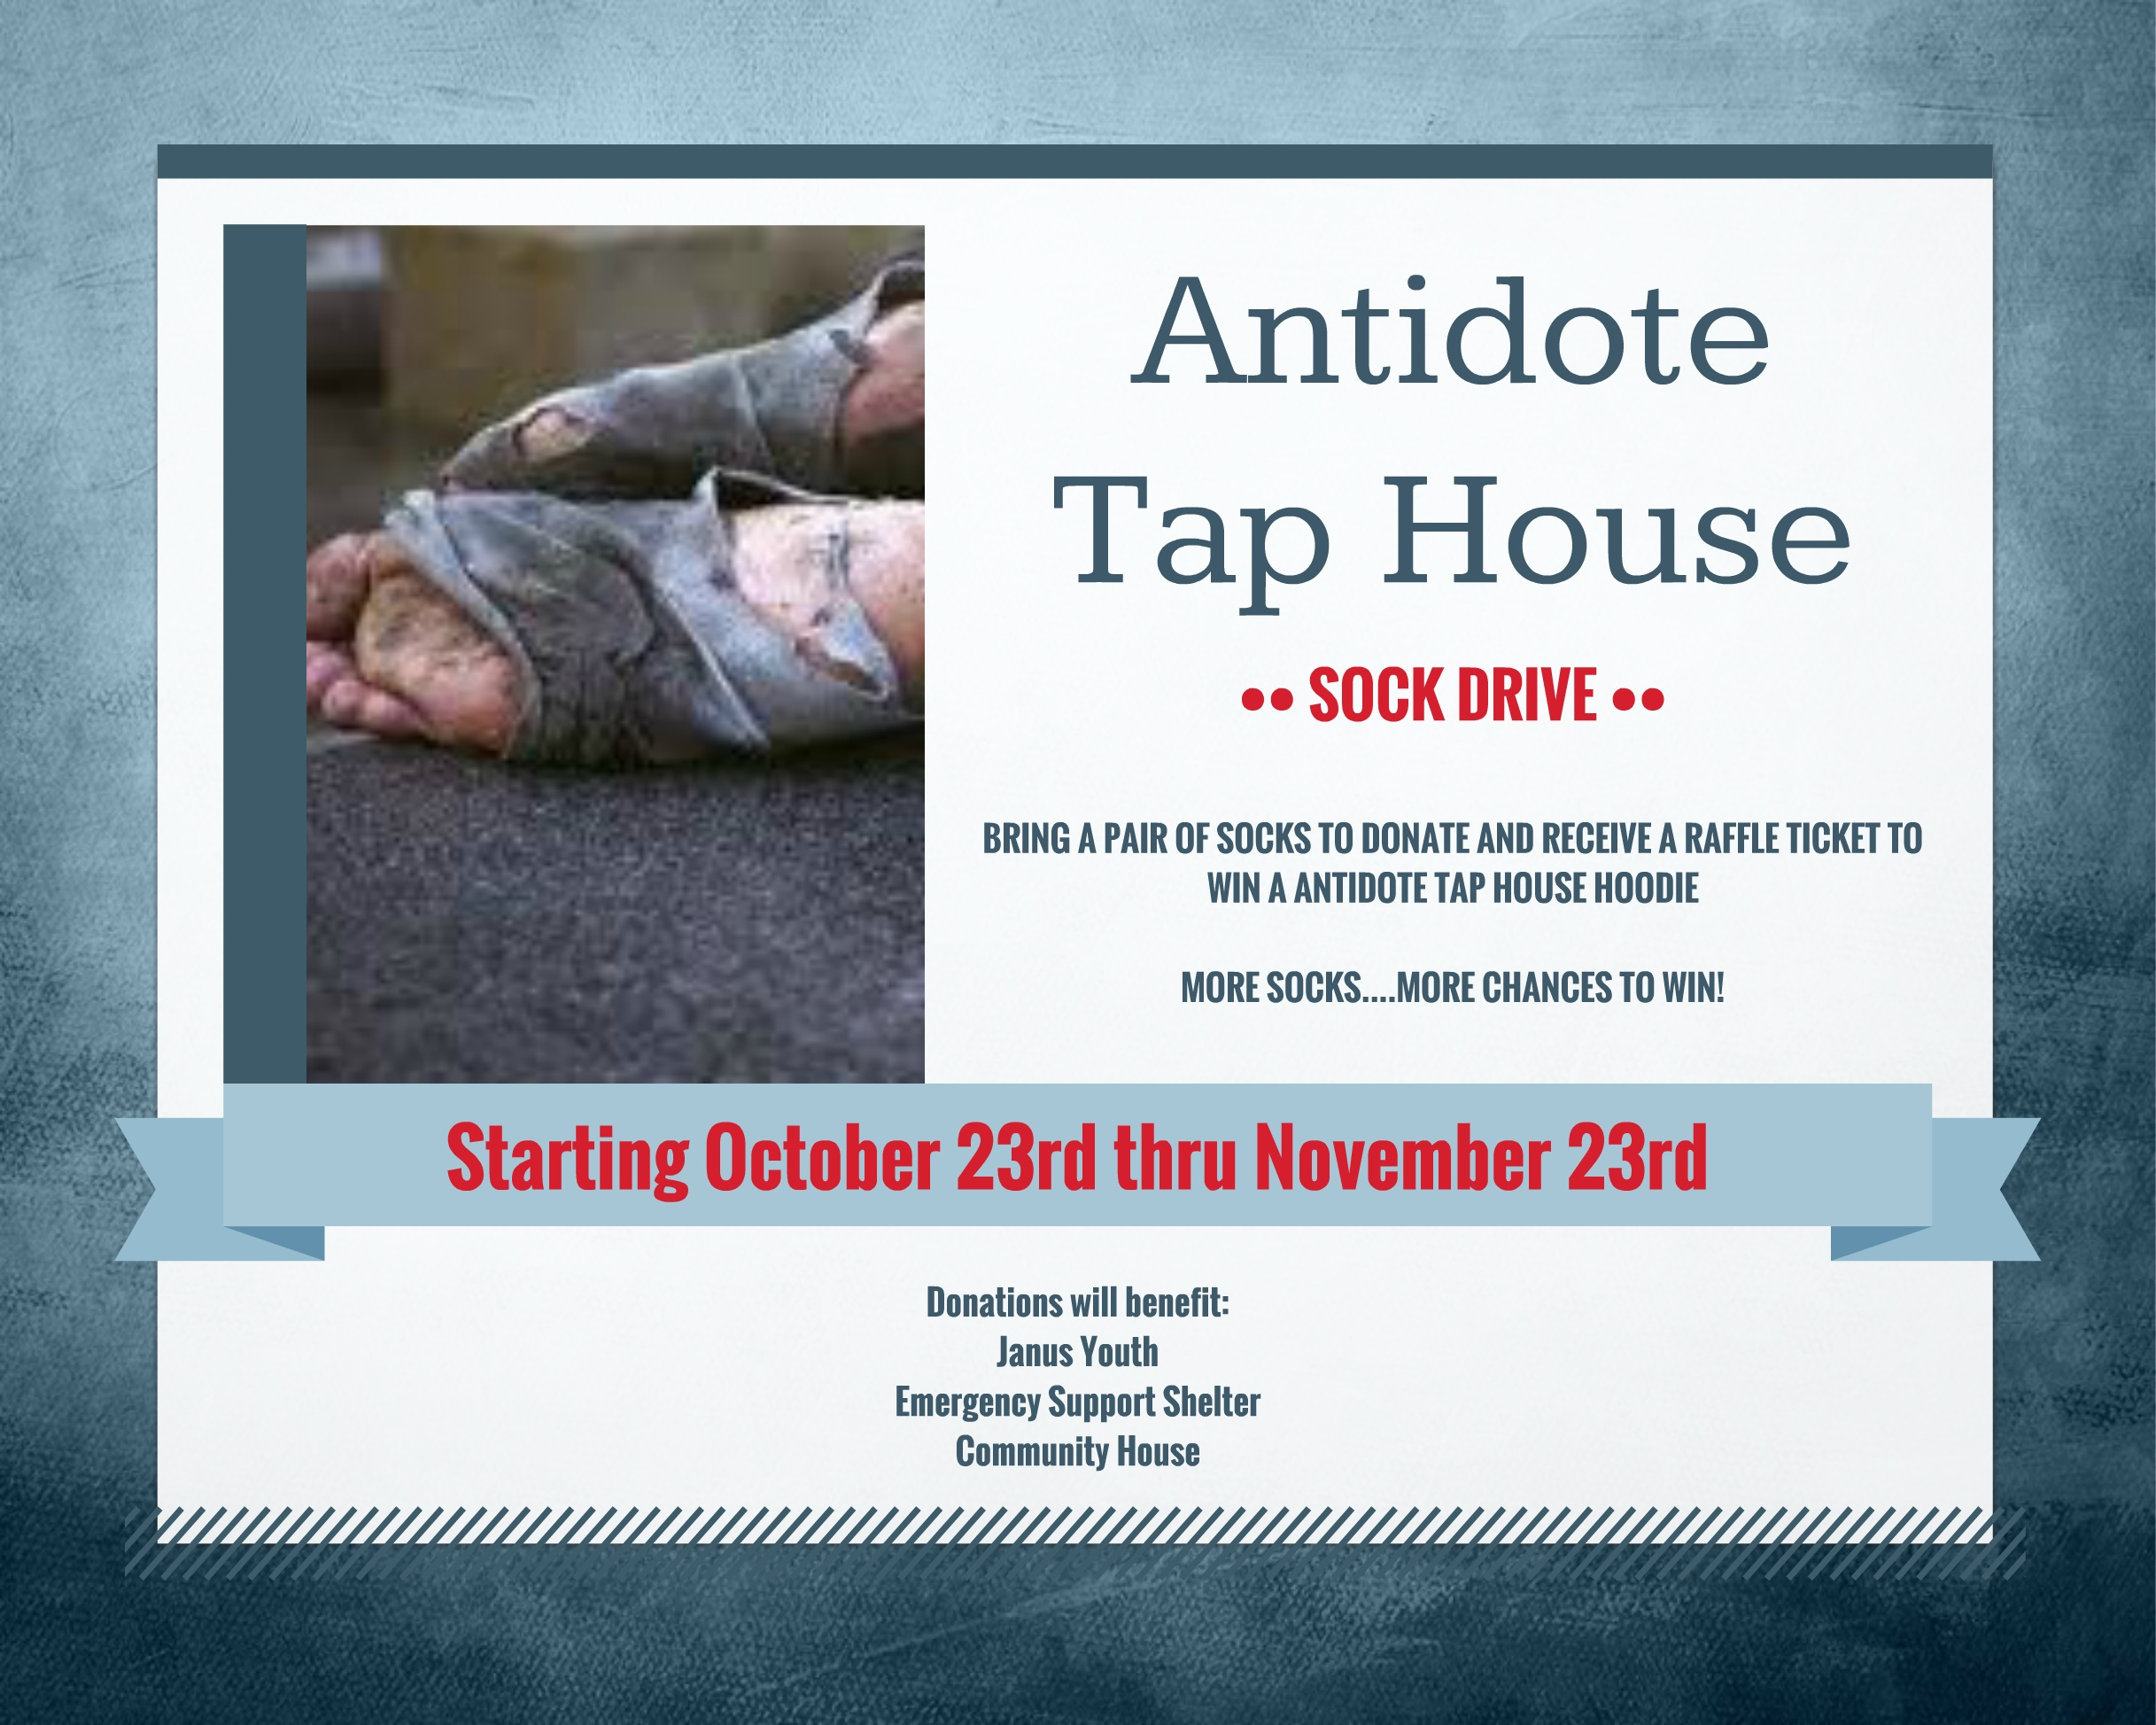 Antidote Tap House Sock Drive